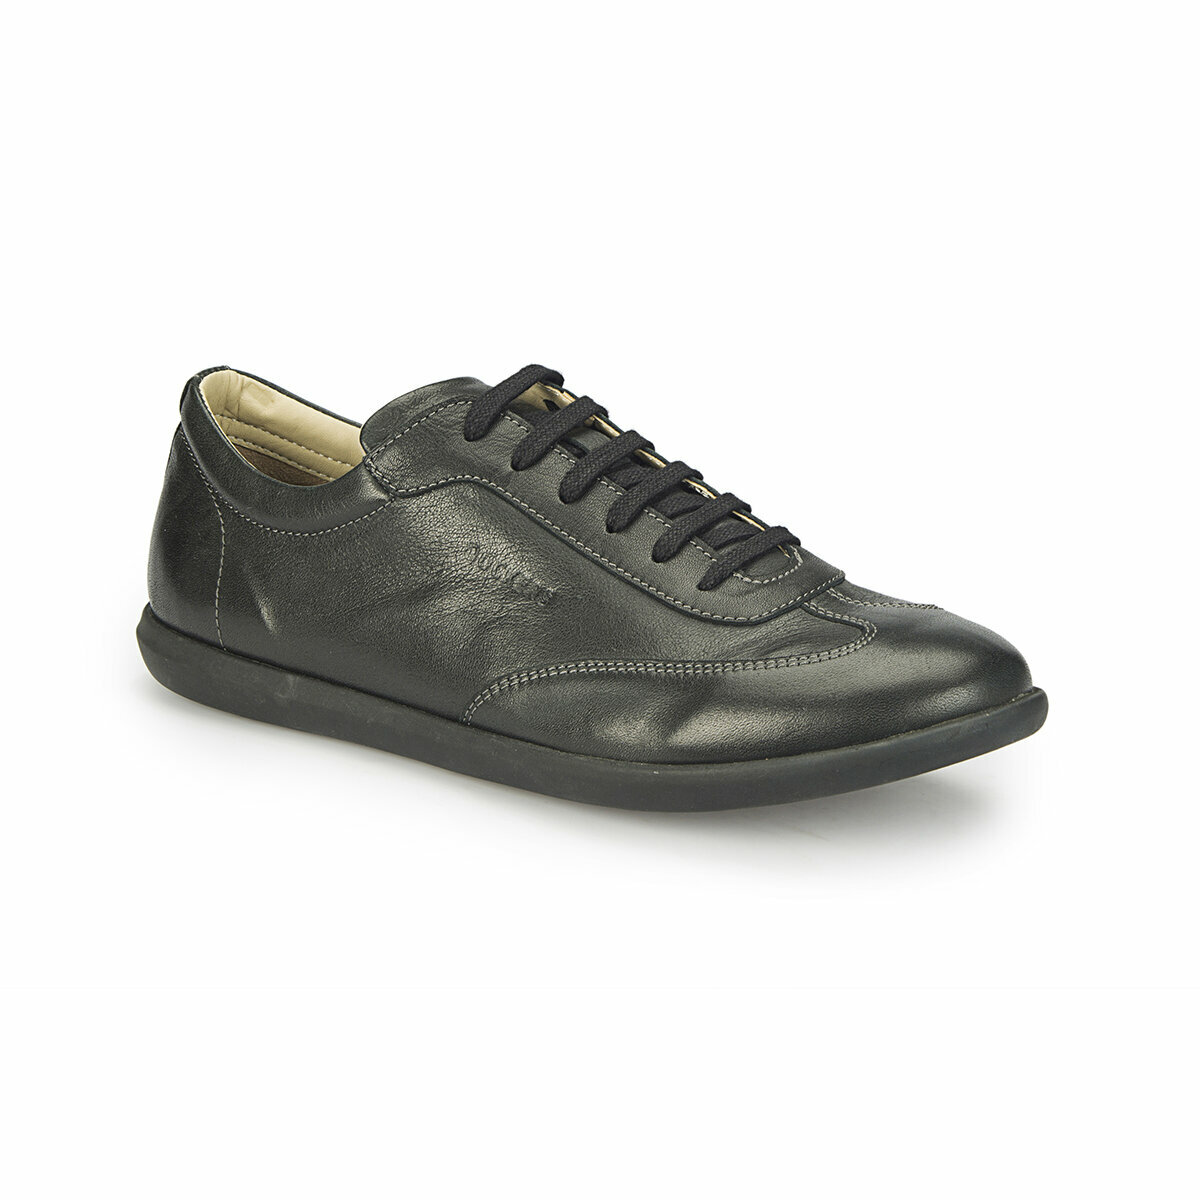 FLO 224101 Black Men 'S Classic Shoes By Dockers The Gerle